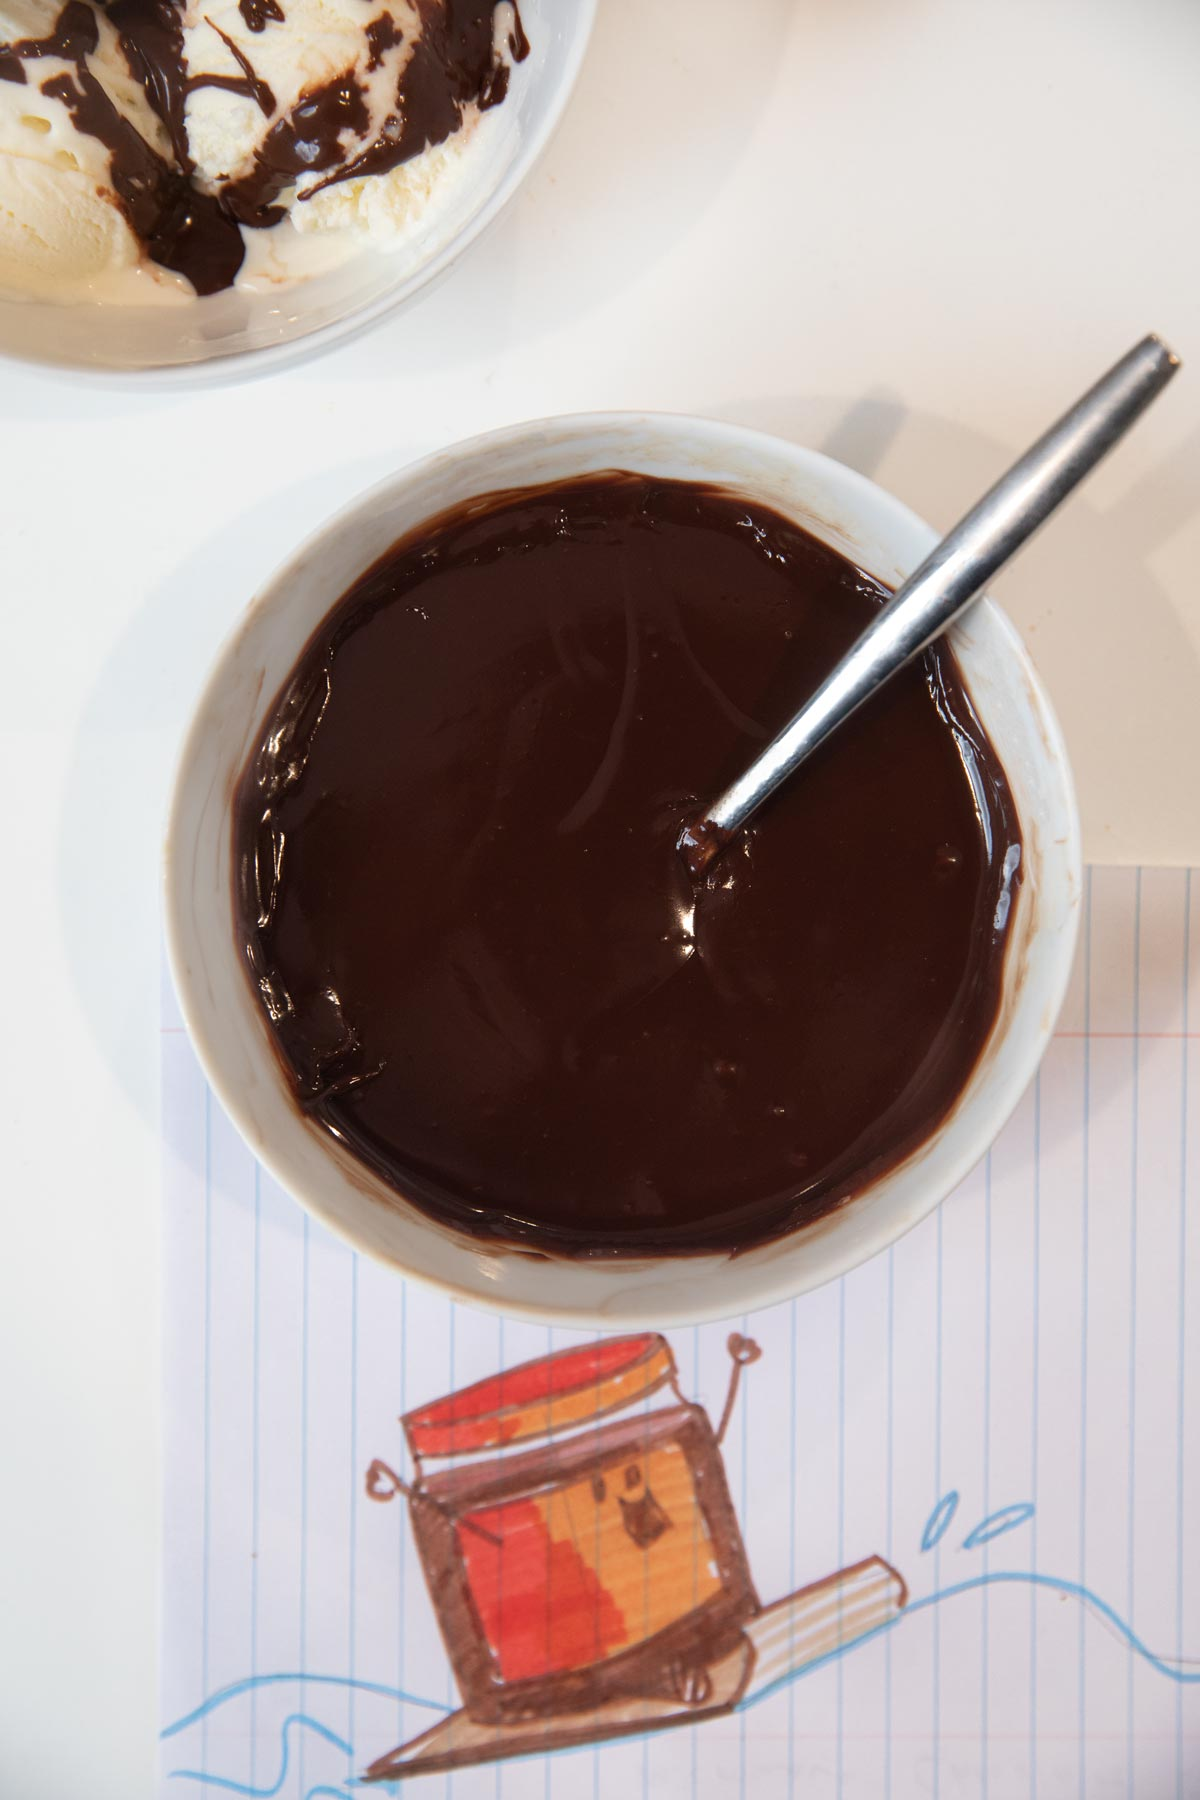 Microwave Chocolate Sauce in bowl